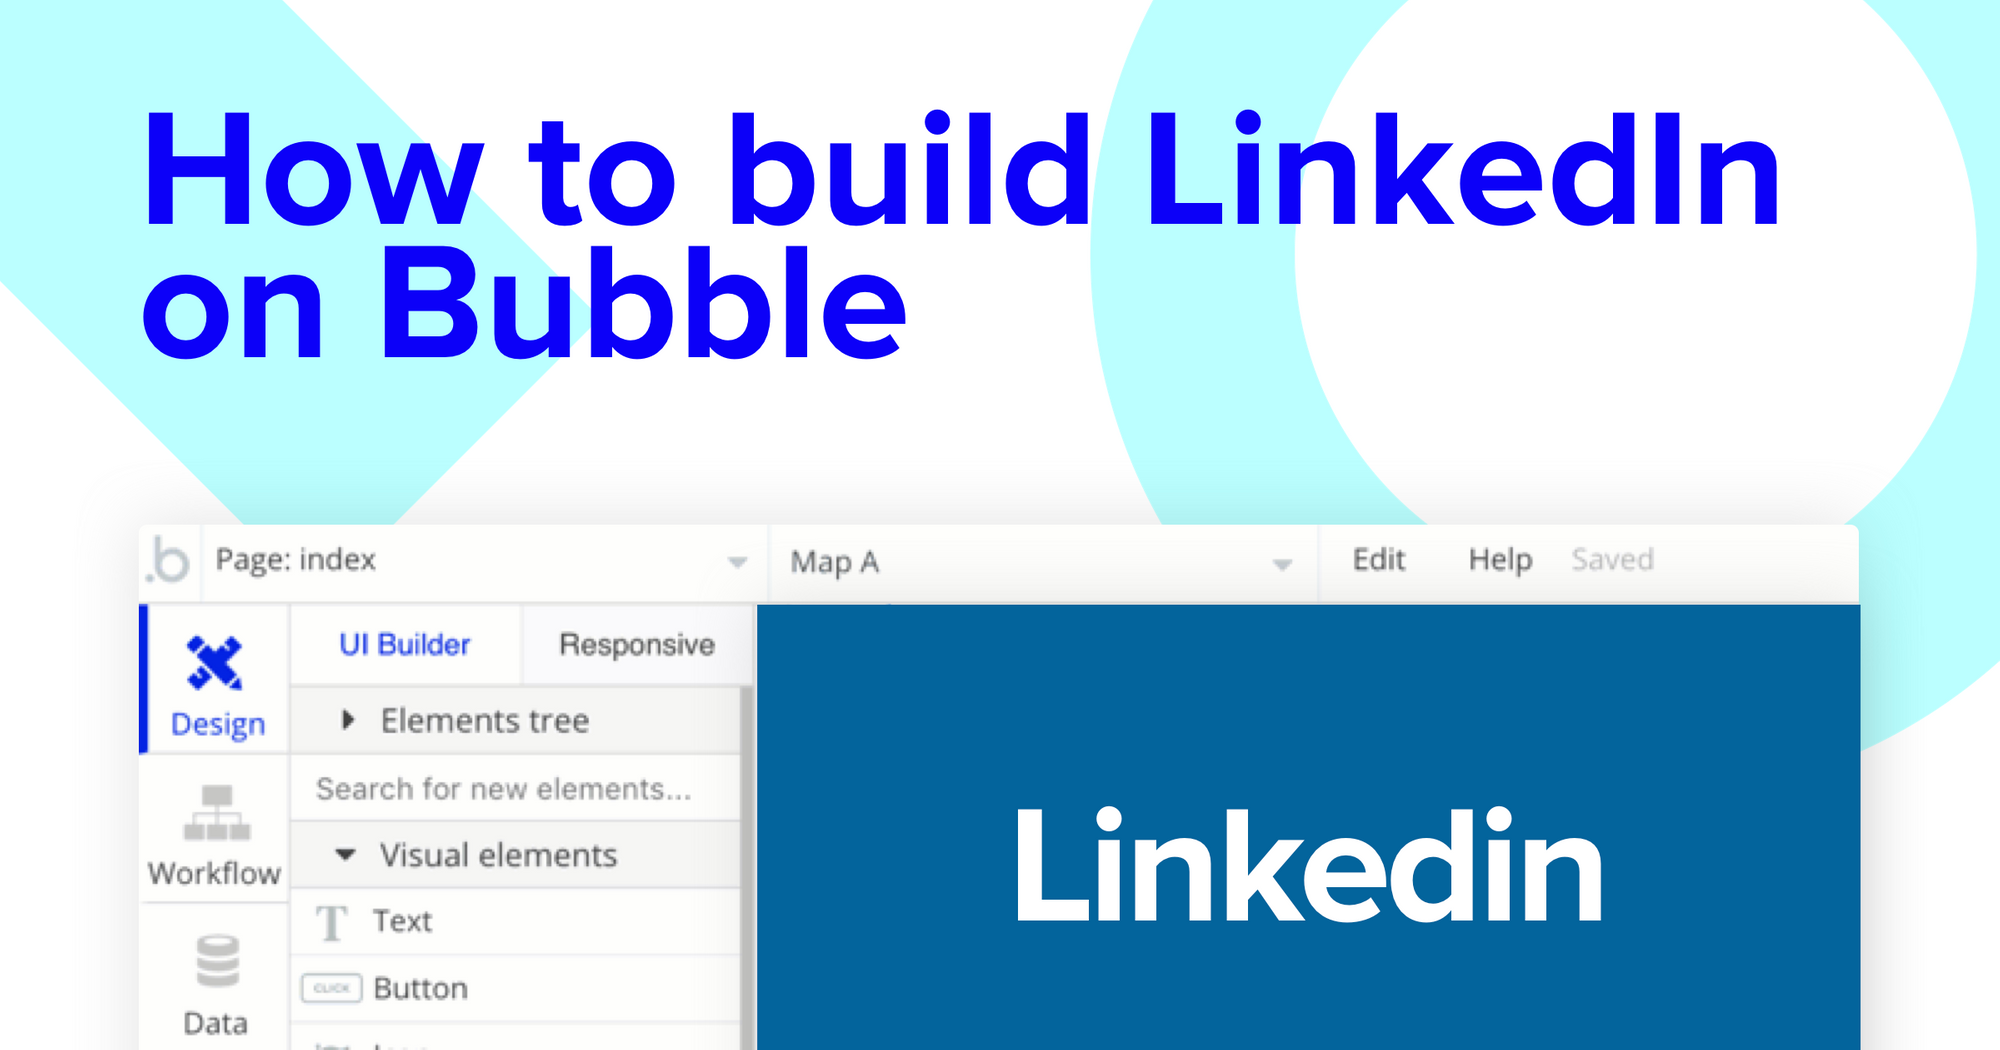 How To Build LinkedIn in Bubble with No Code Tutorial